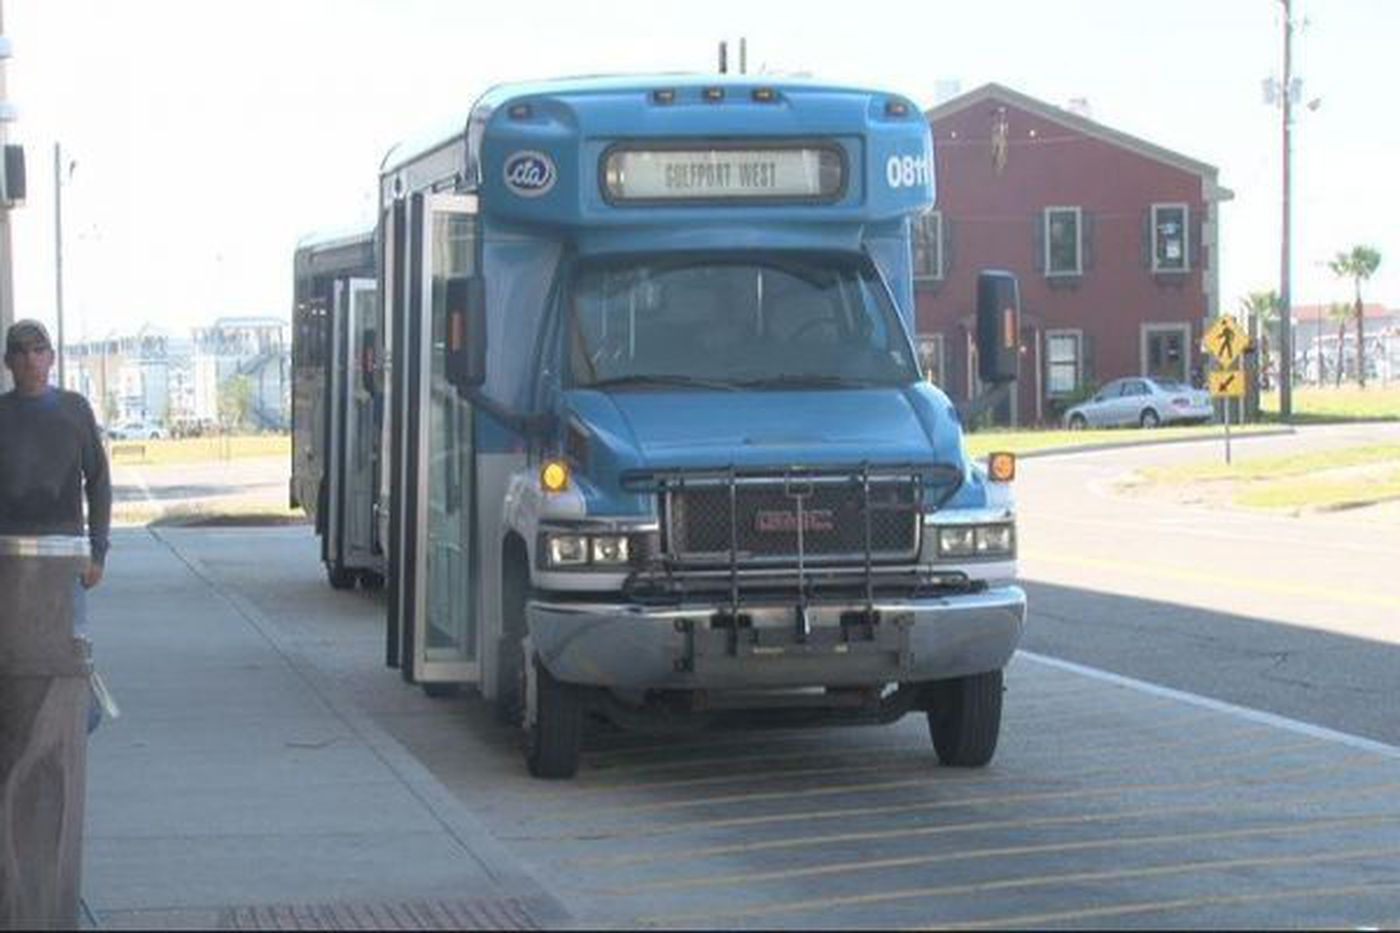 CTA buses will use Sunday time schedule for Memorial Day